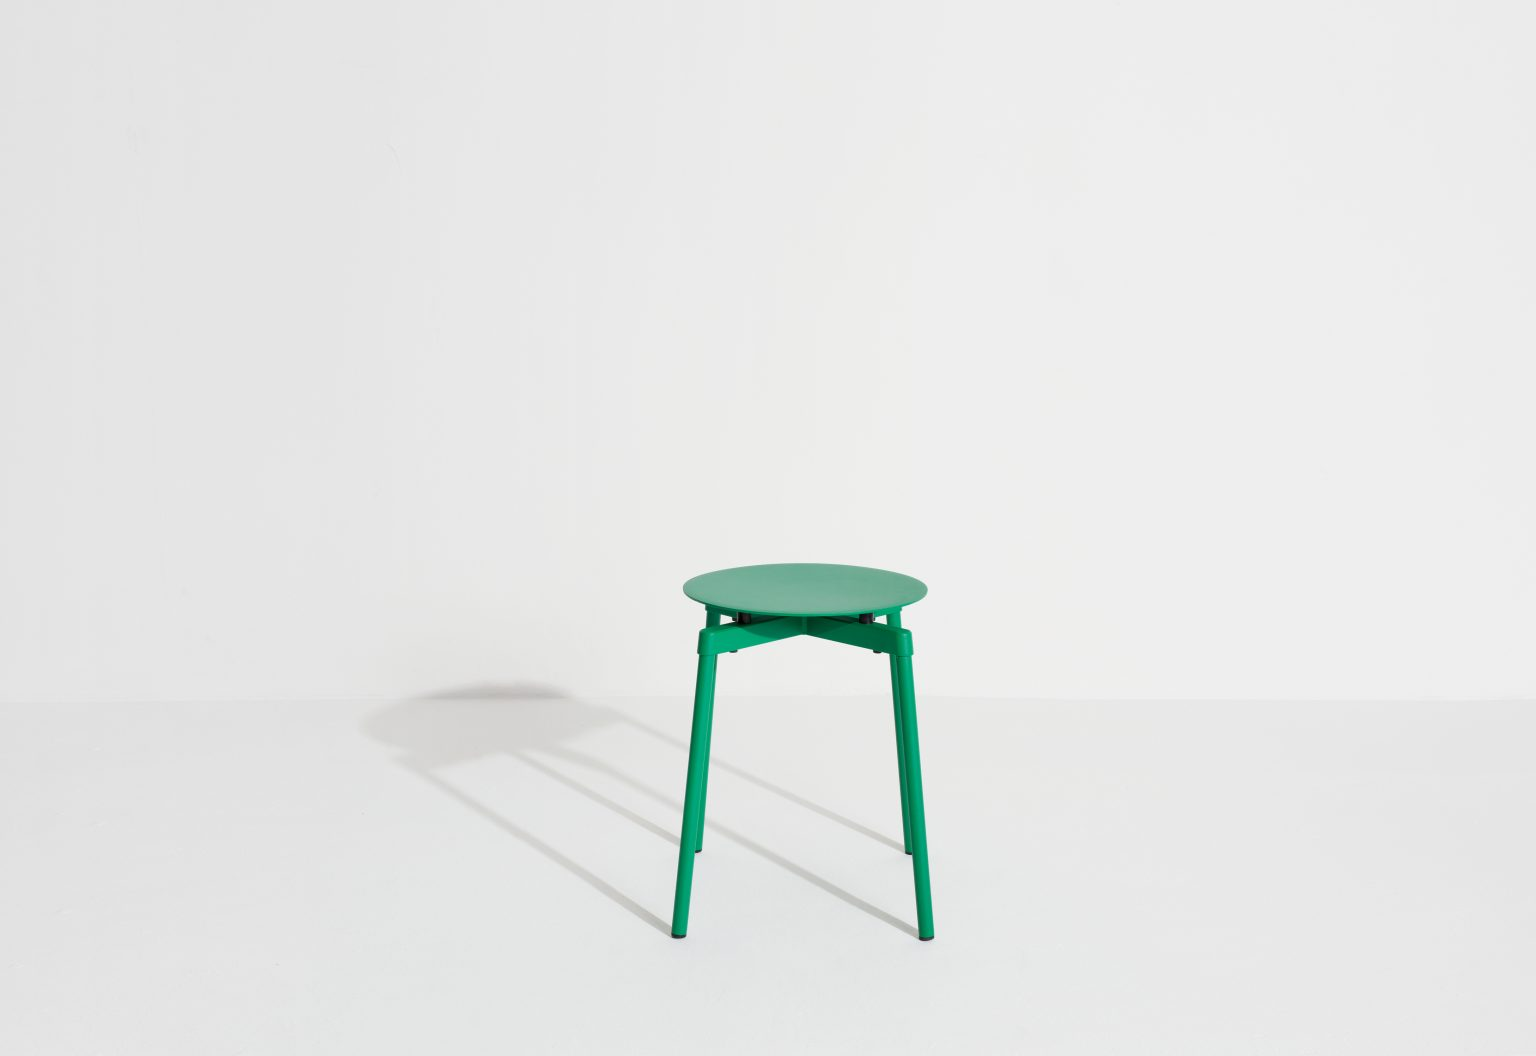 Biennale Interieur - Belgium's leading design and interior event - M0810503_fromme_stool_mintgreen_©pf_packshot_hd.jpg